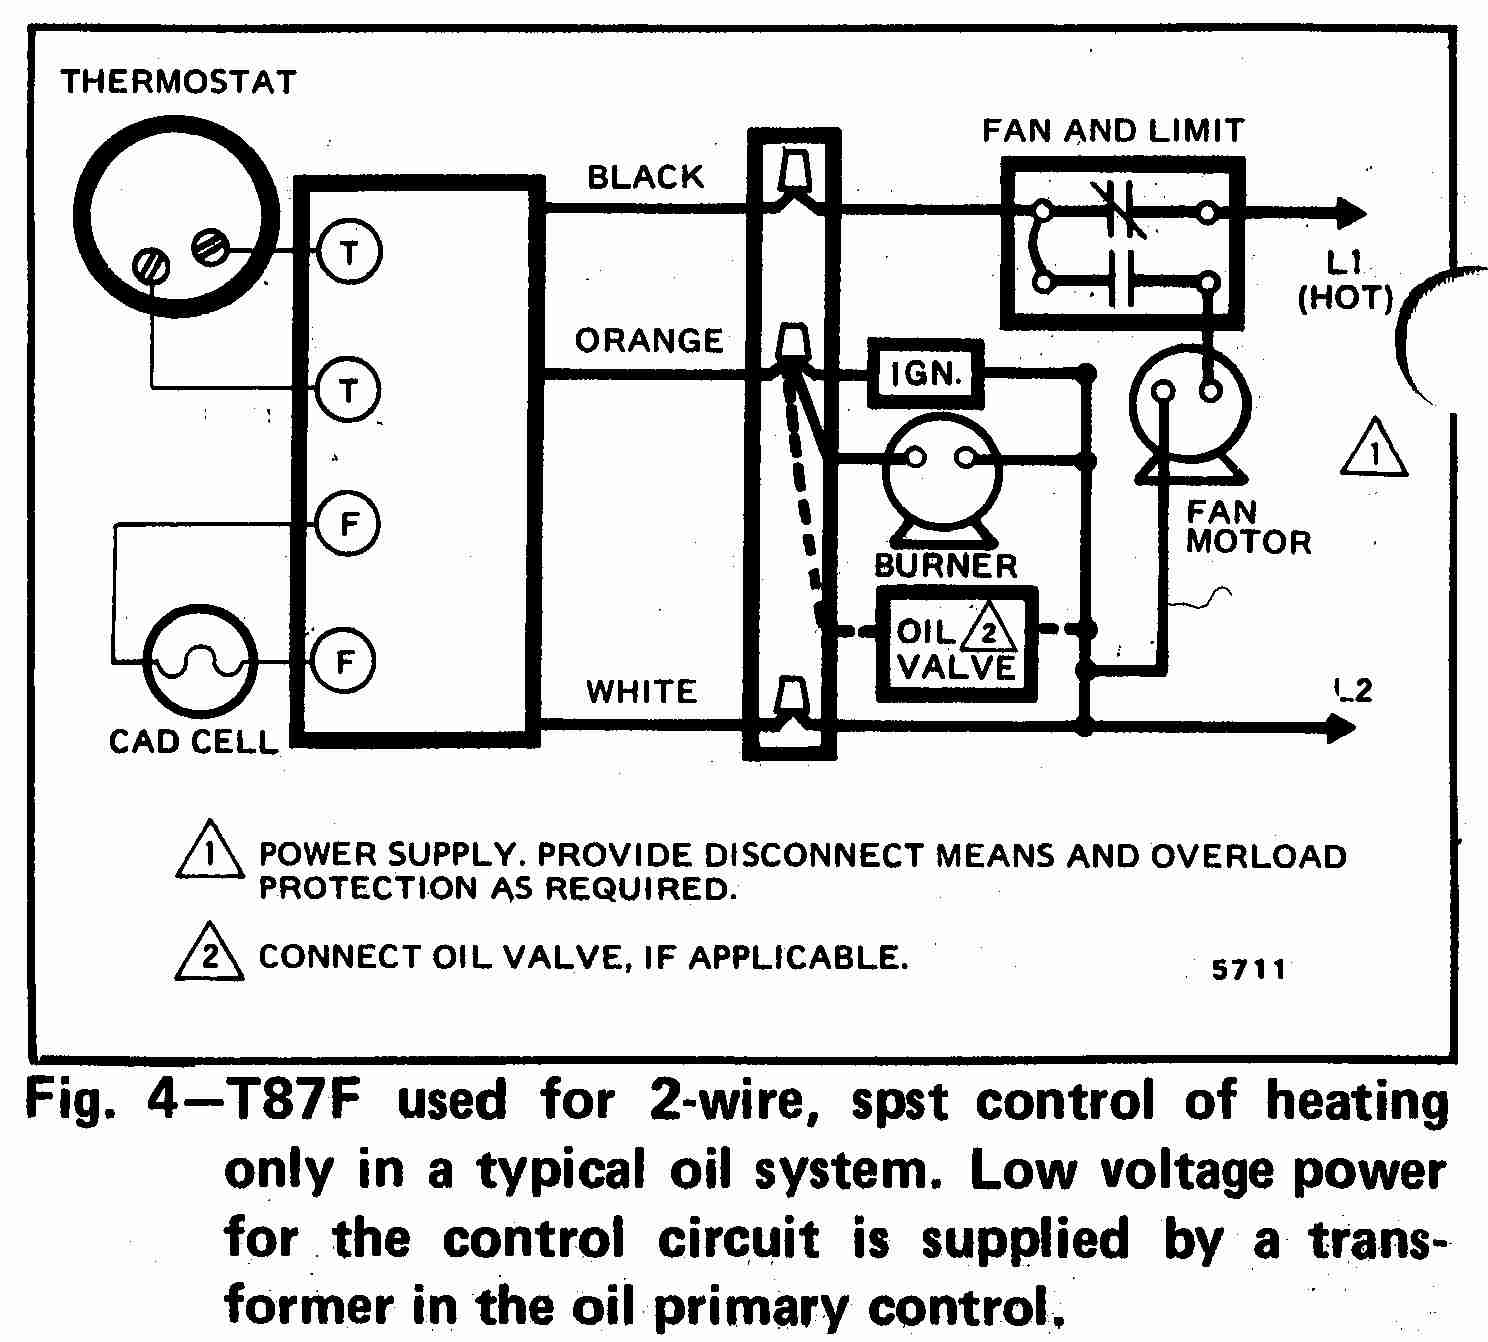 TT_T87F_0002_2W_DJF room thermostat wiring diagrams for hvac systems bryant air conditioner wiring diagram at readyjetset.co